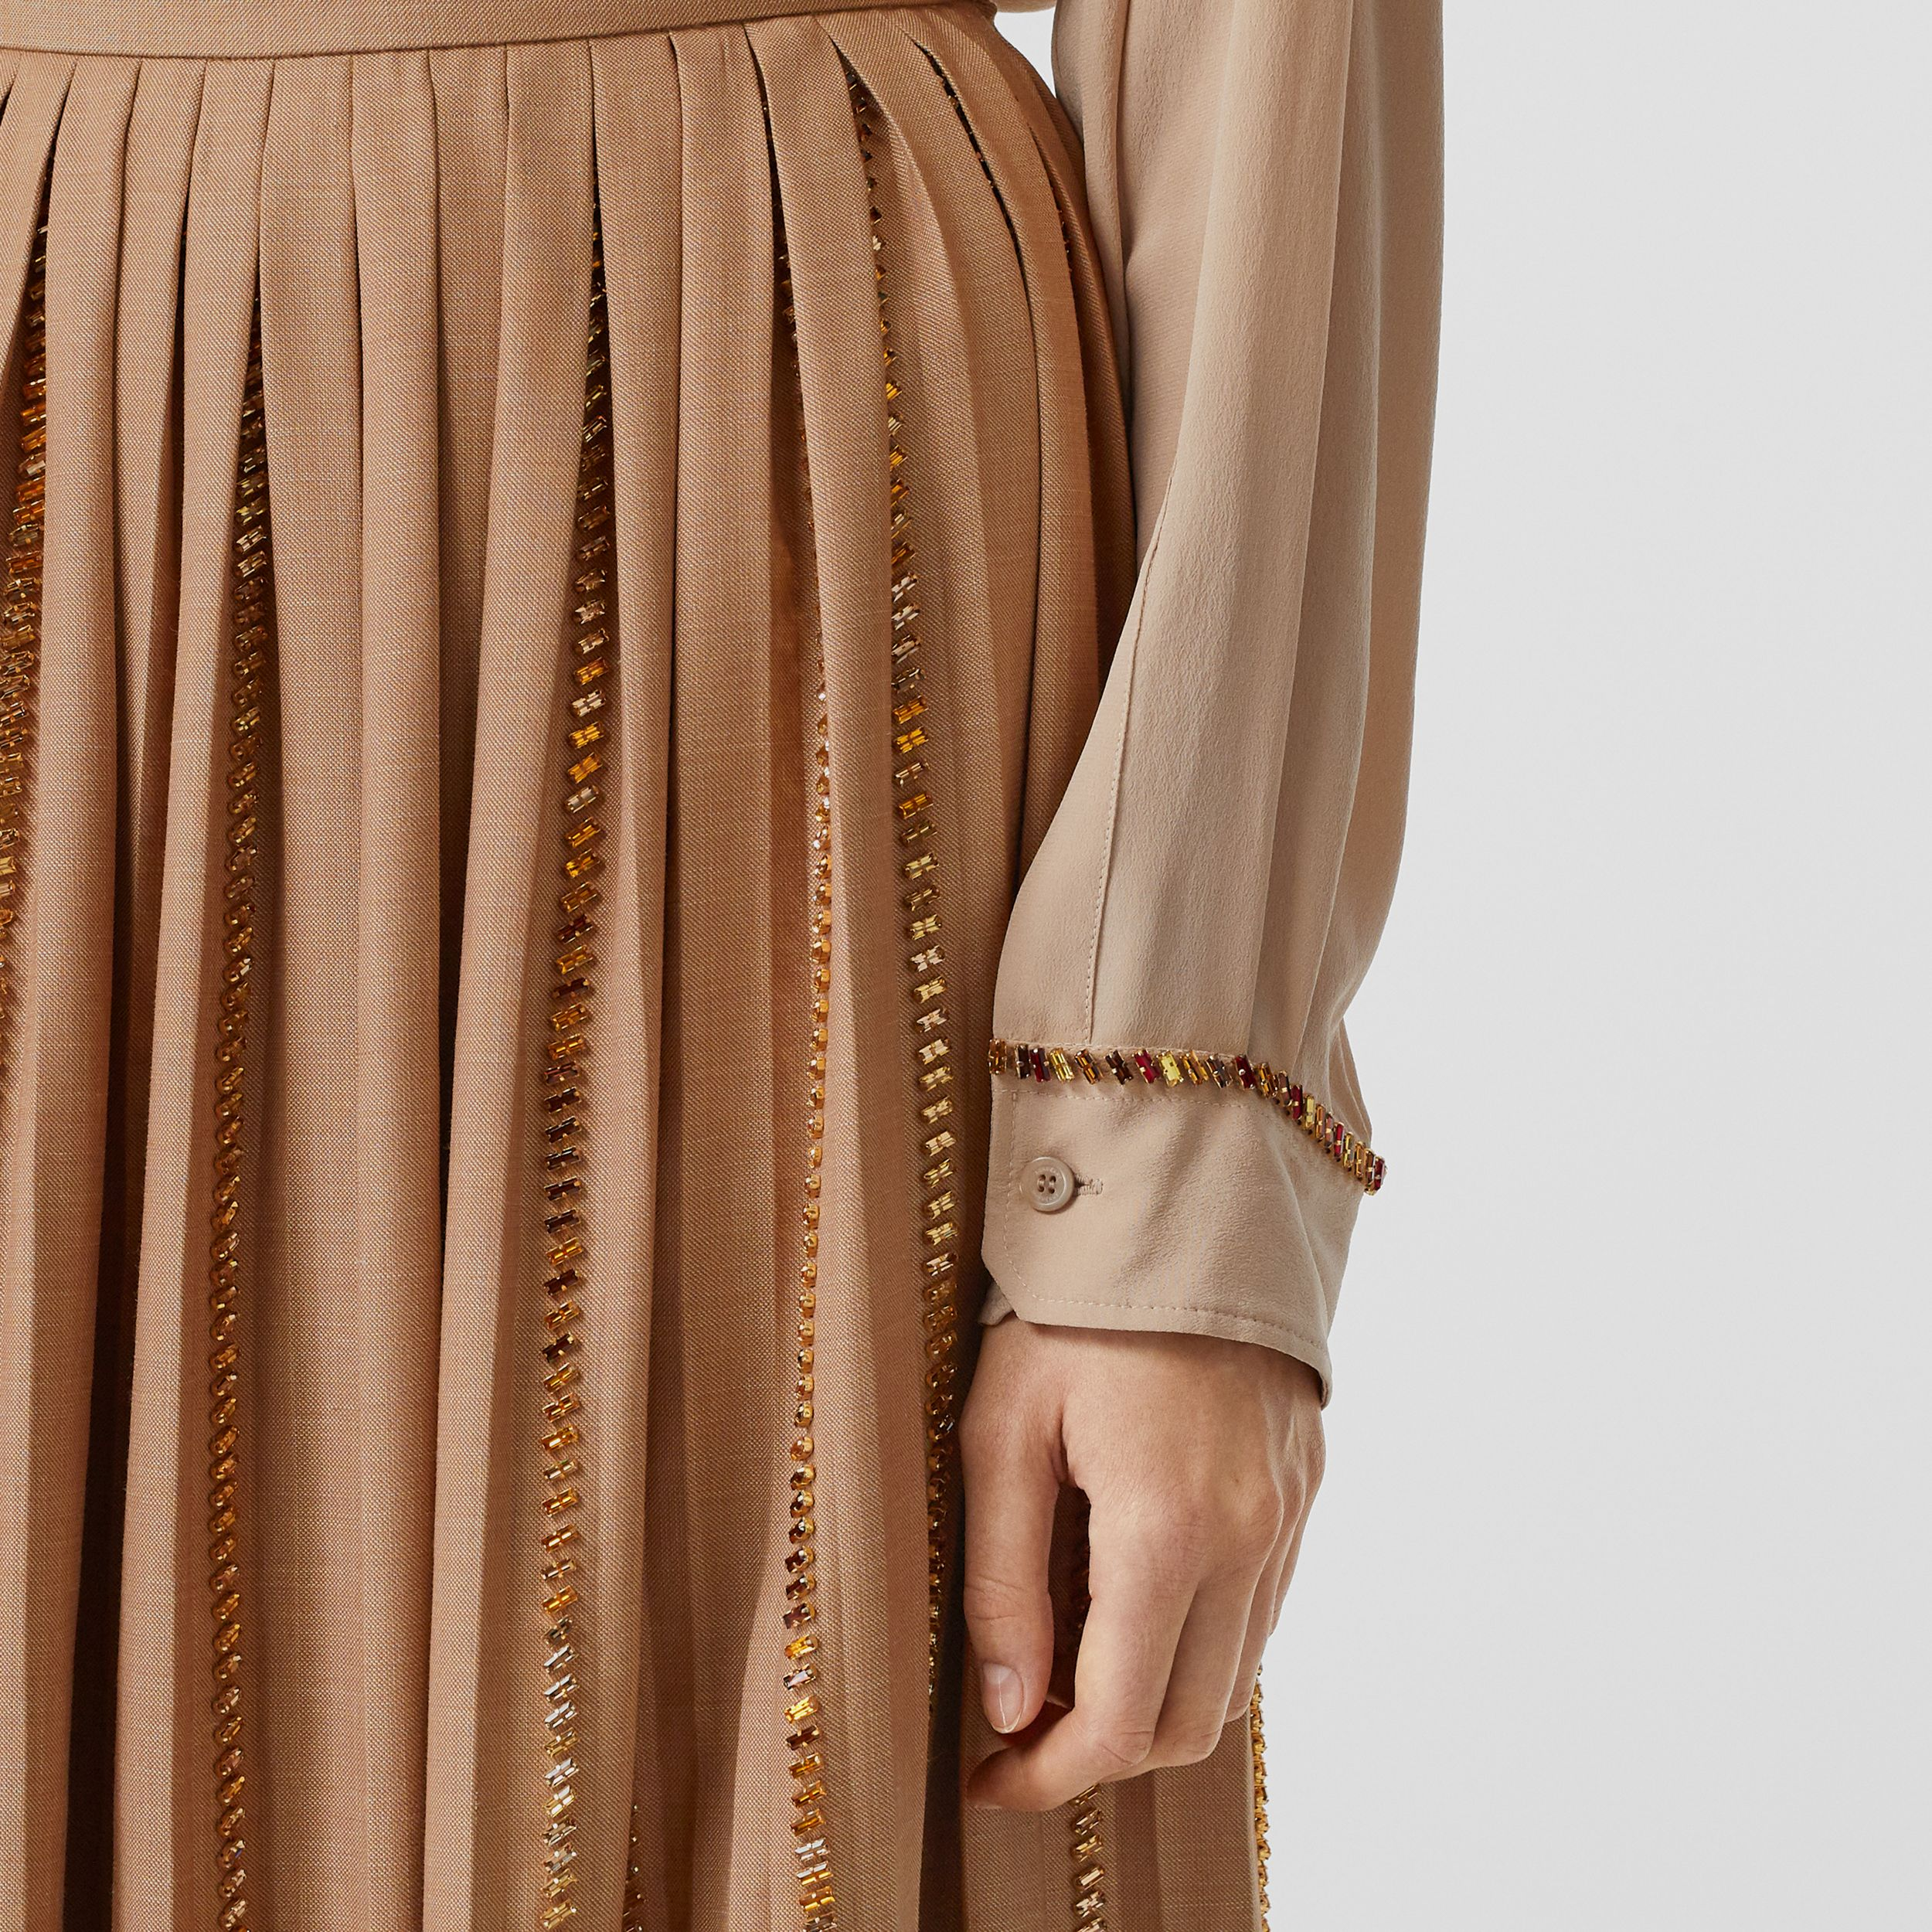 Crystal Detail Plissé Soleil Wool Silk Blend Skirt in Biscuit - Women | Burberry - 2